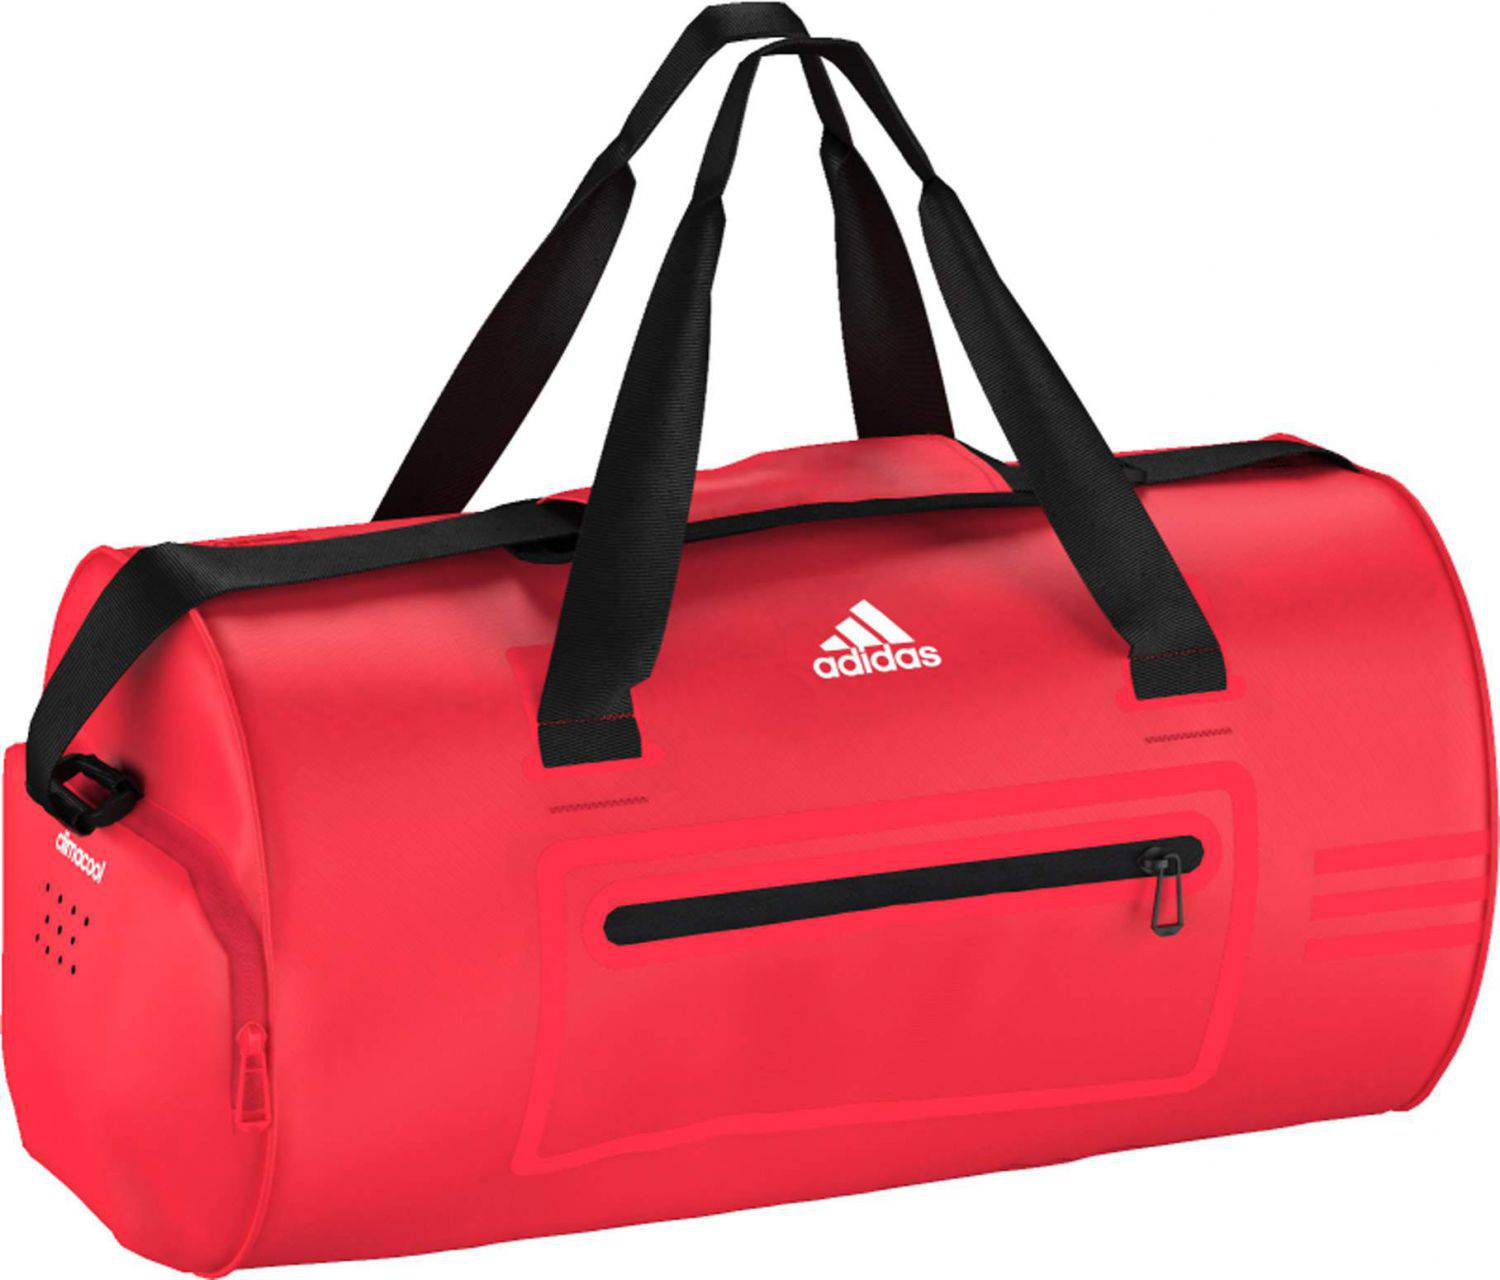 adidas-climacool-teambag-s-sporttaschen-farbe-shock-red-s16-shock-red-s16-white-